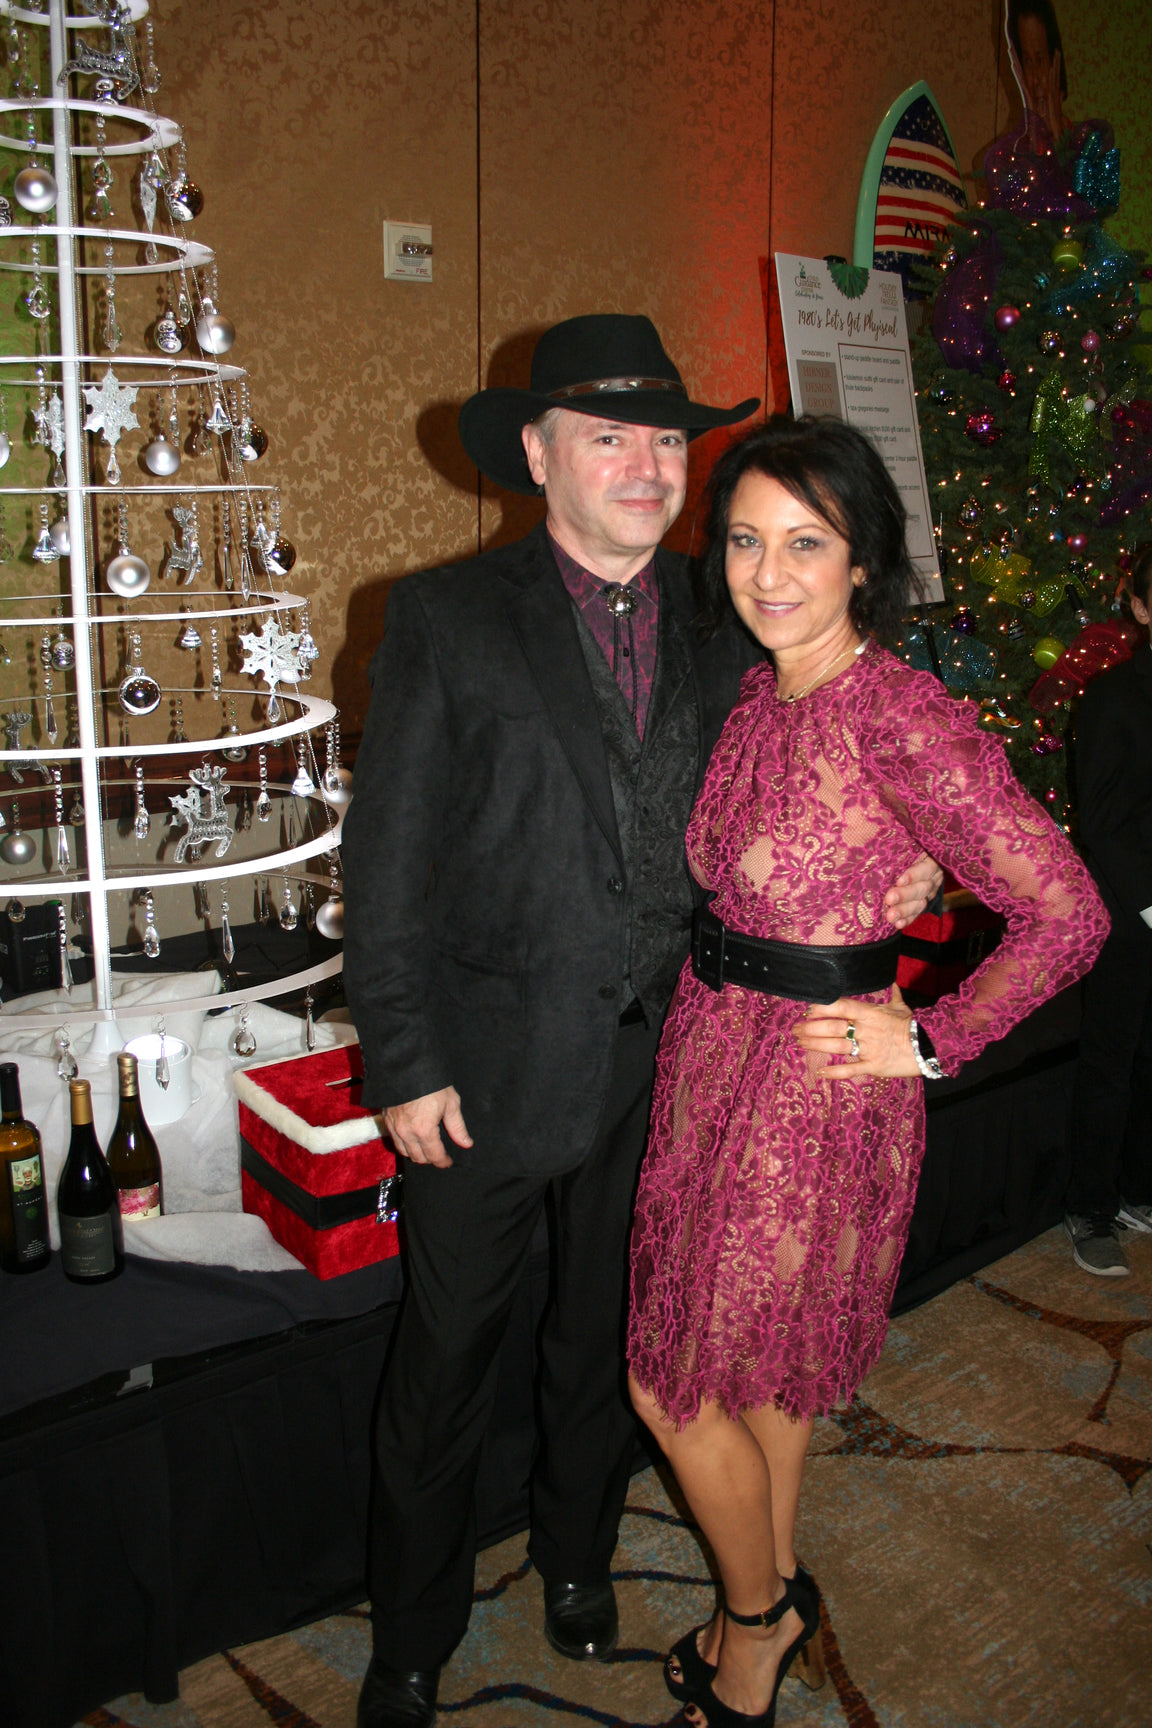 A man and a woman posing next to a wired Christmas tree in white